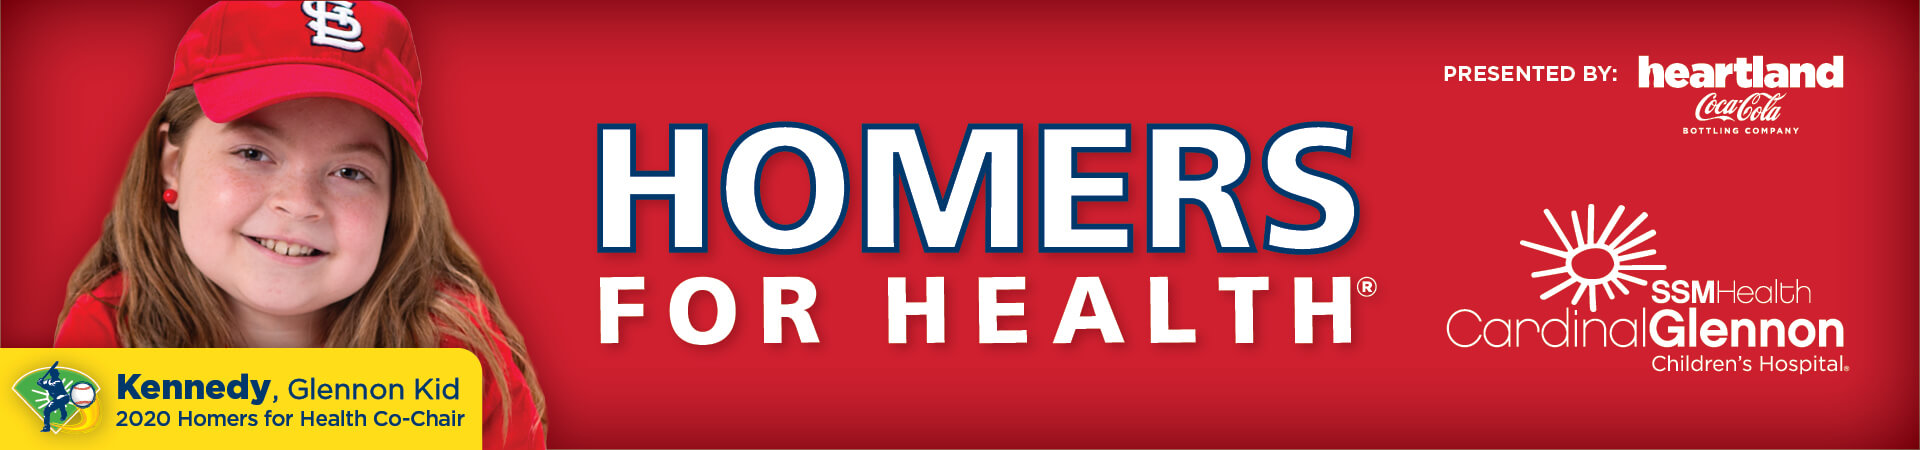 Homers for Health - Make Homers Matter More